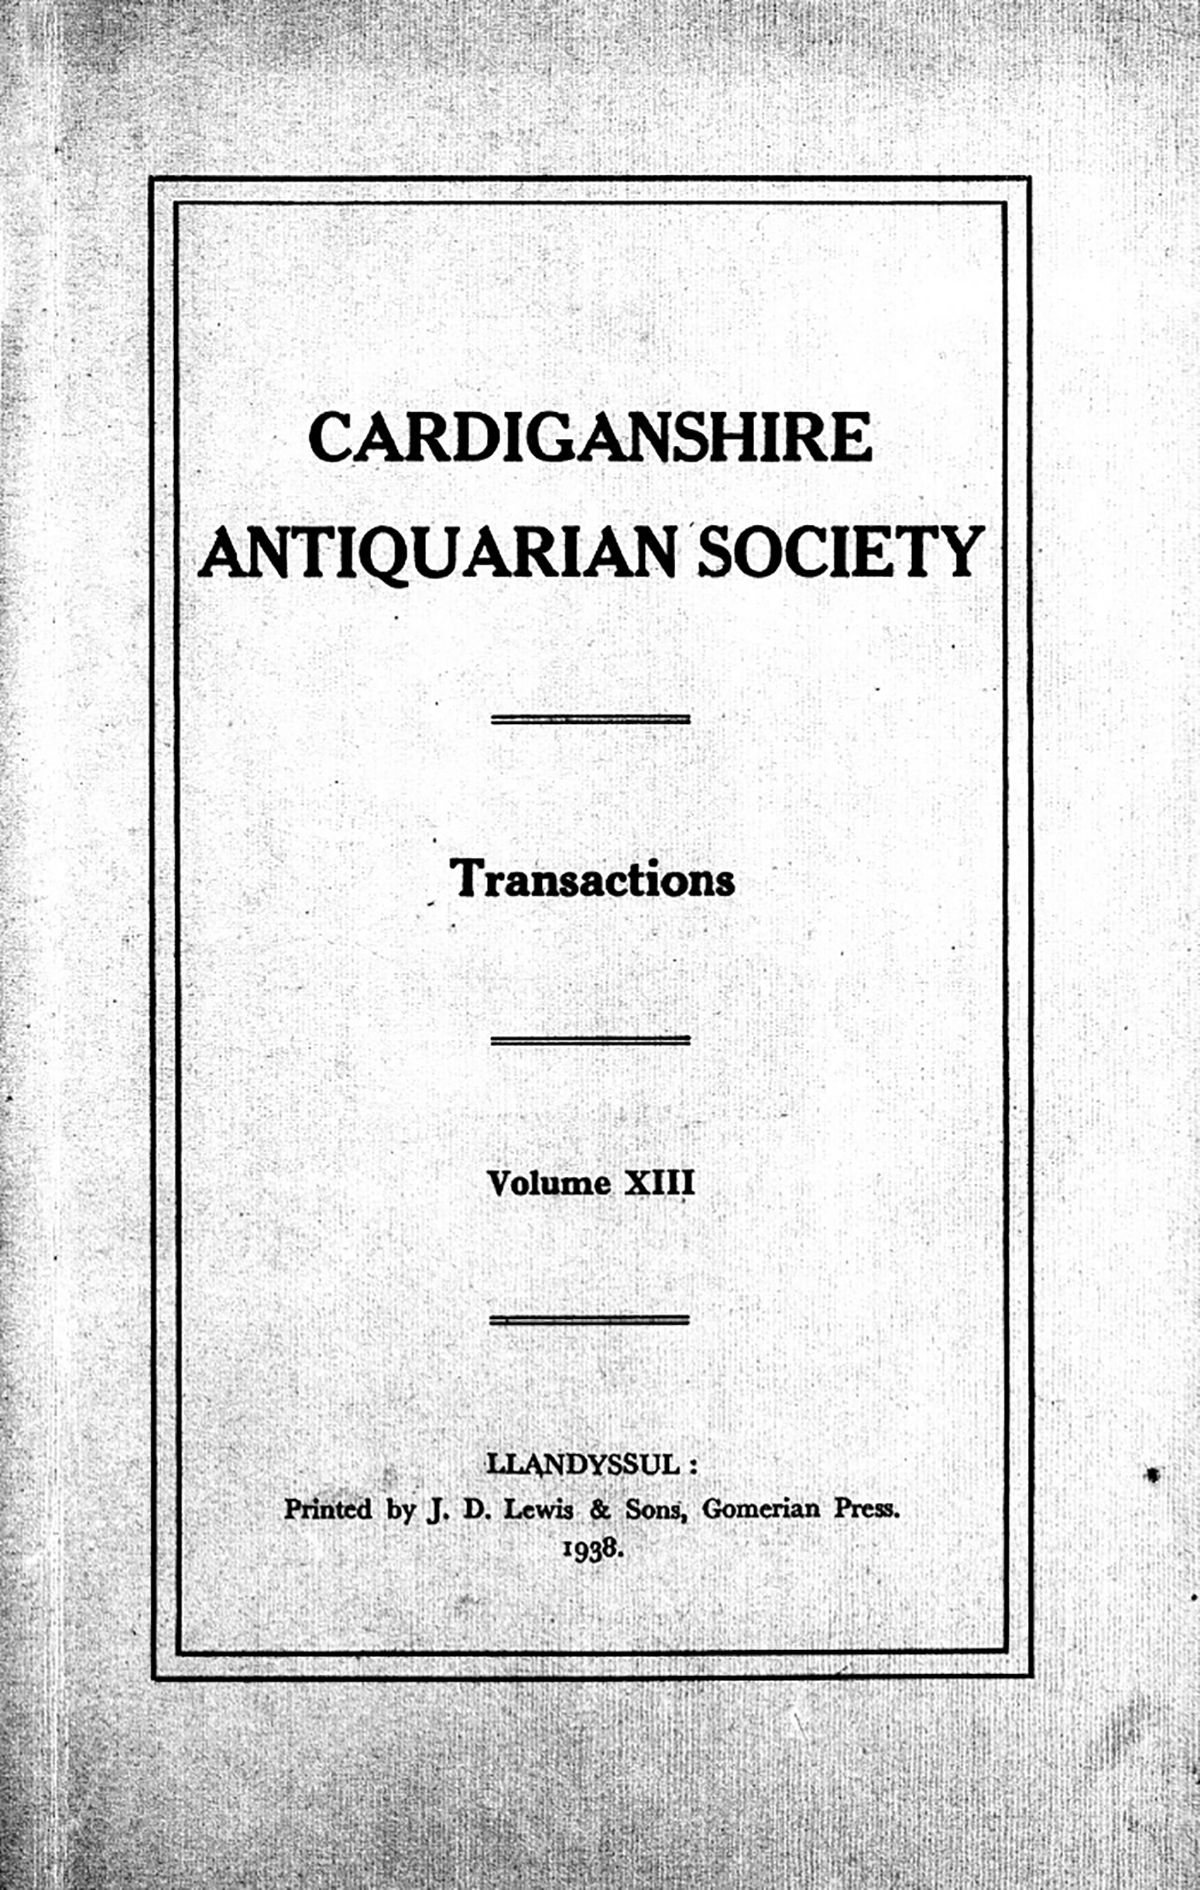 Transactions of the Cardiganshire Antiquarian Society and archaeological Record - Volume 13